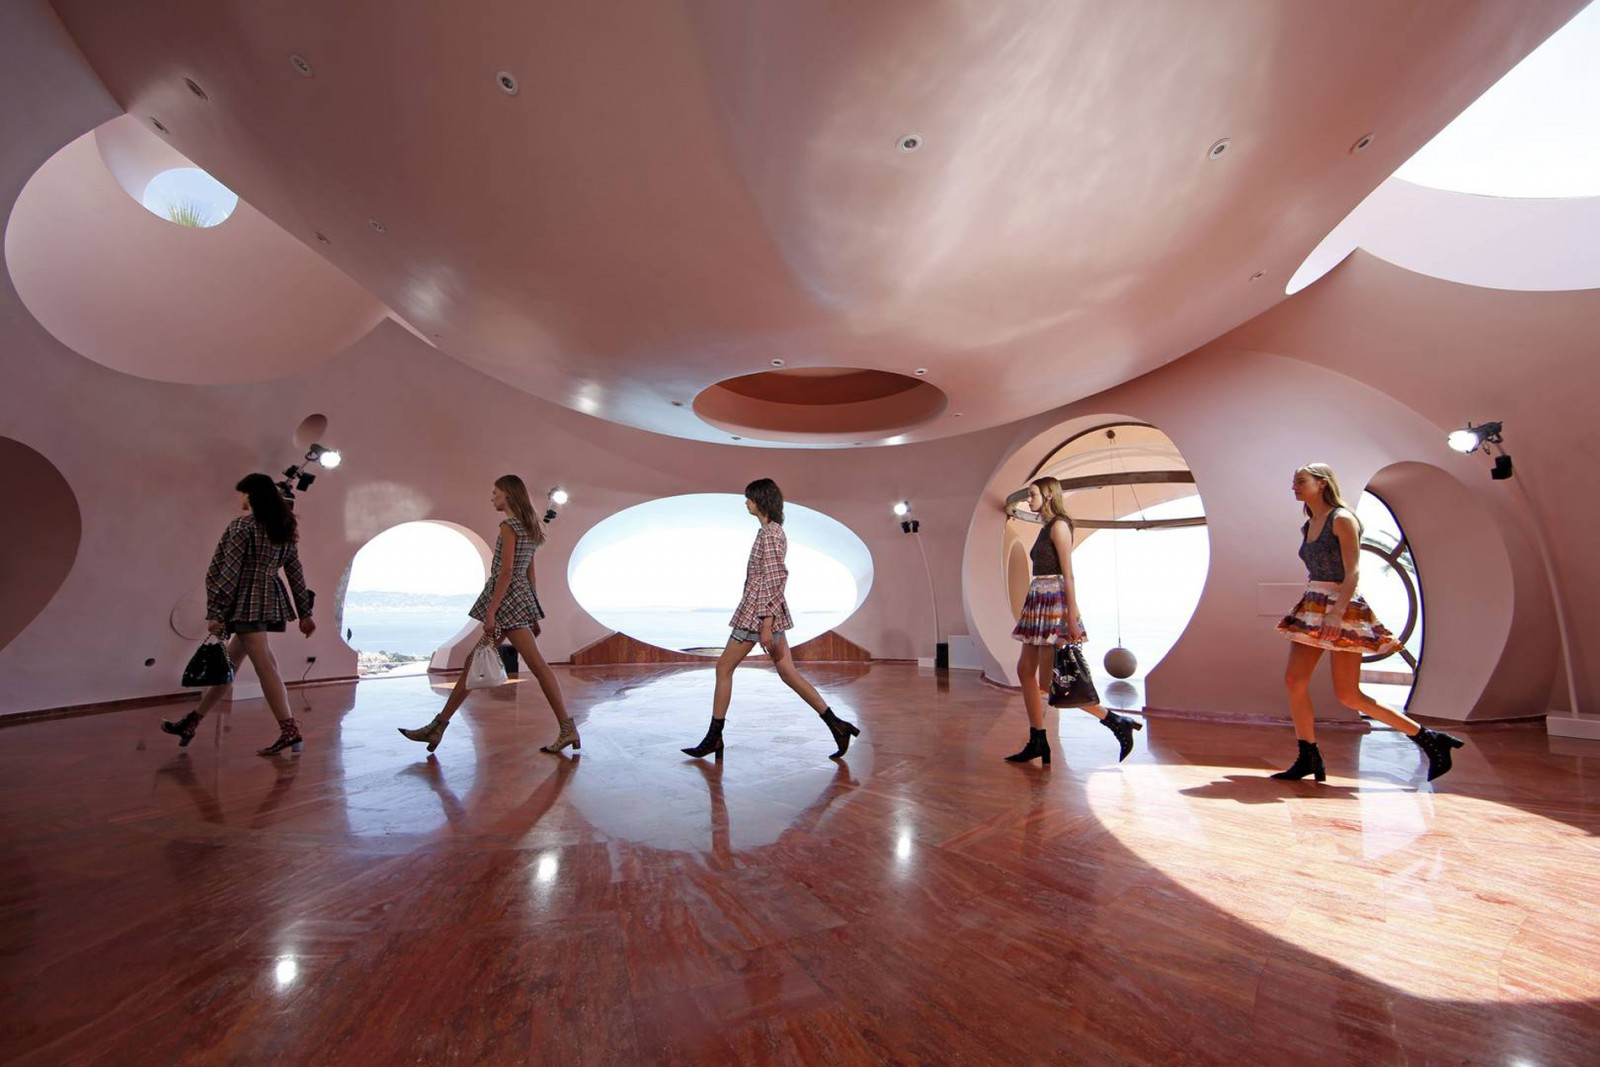 Models present creations by Belgian designer Raf Simons for Dior's women CRUISE 2016 collection during a fashion show at the Palais Bulles (or Palace of Bubbles) by Hungarian architect Antti Lovag in Theoule-sur-Mer, near Cannes, Southern France, May 11, 2015. The 68th Cannes Film Festival will run from May 13 to 24, 2015. REUTERS/Benoit Tessier